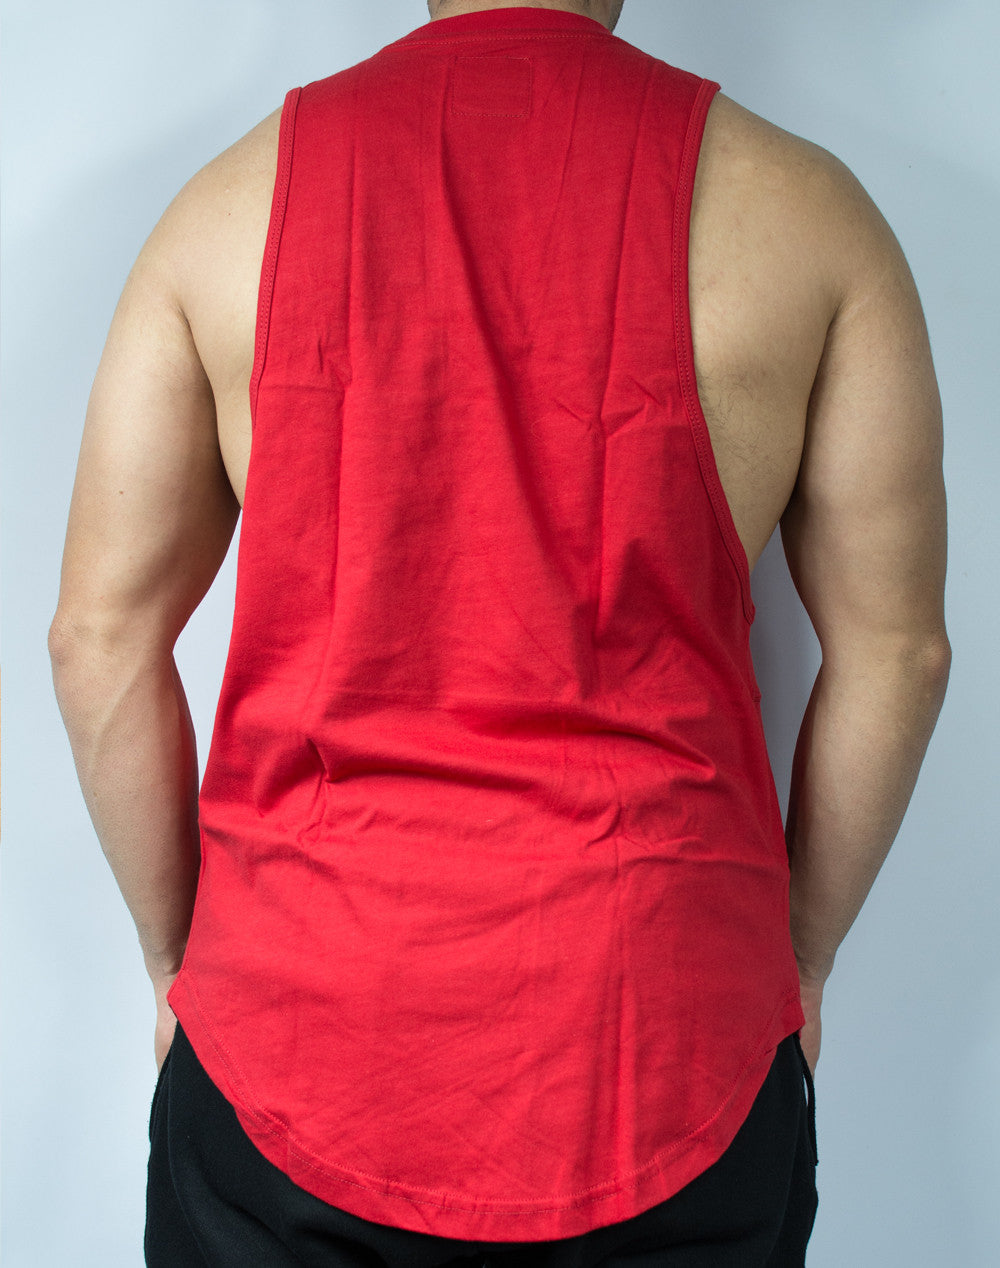 Scal Deluxe Cutoff Tee - Red - Scal Clothing - 3